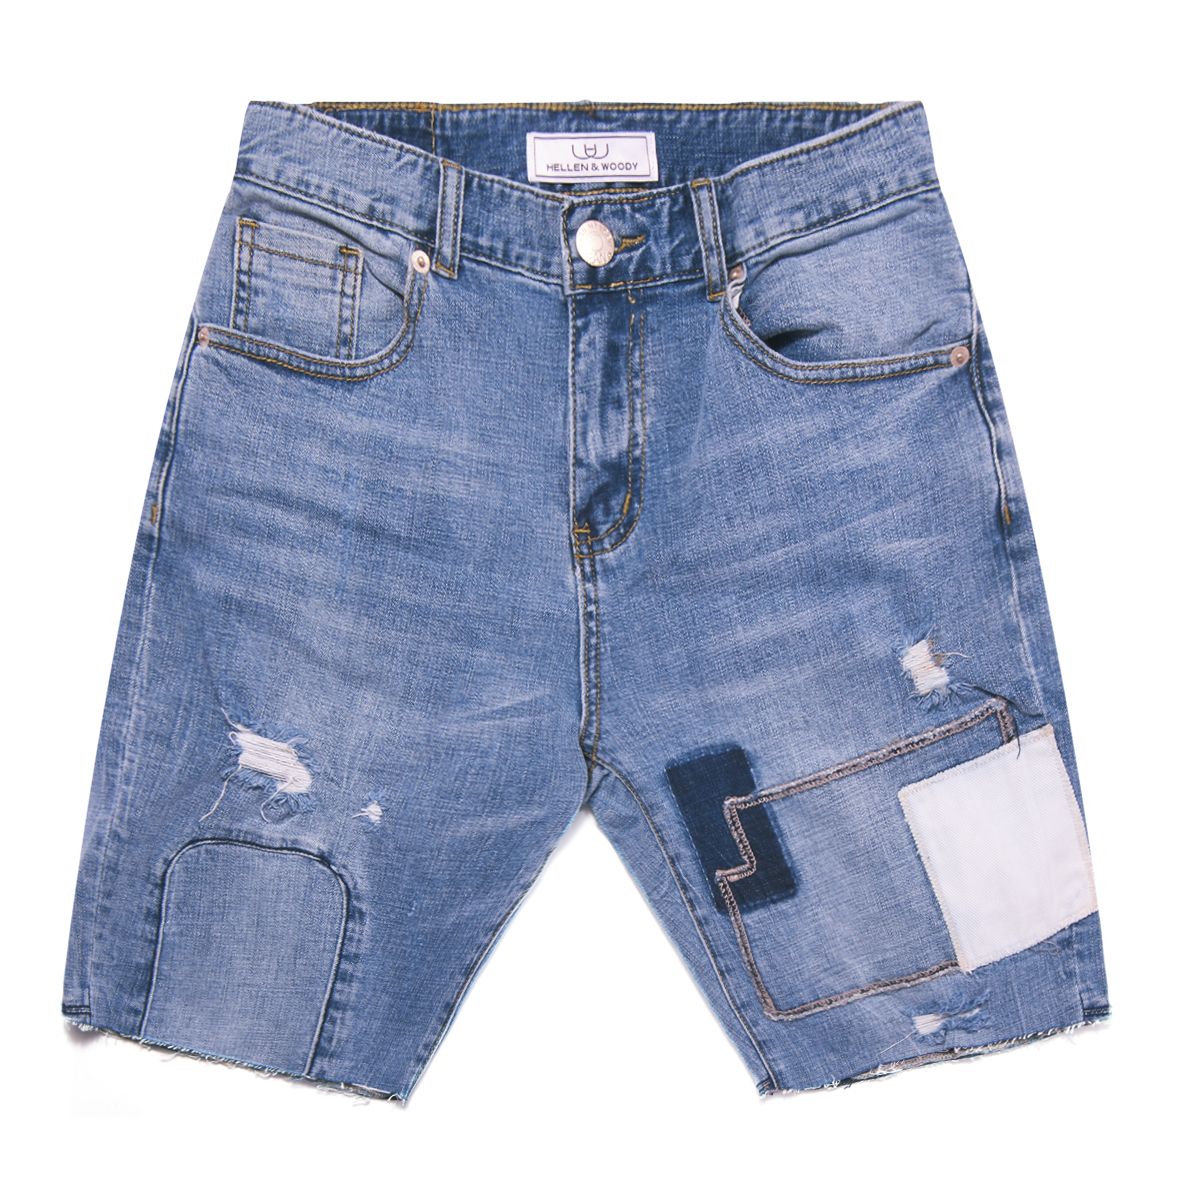 HELLEN&WOODY/H&W Men's Fashion Destroyed Blue Jeans Ripped Destroyed Pants HW1605